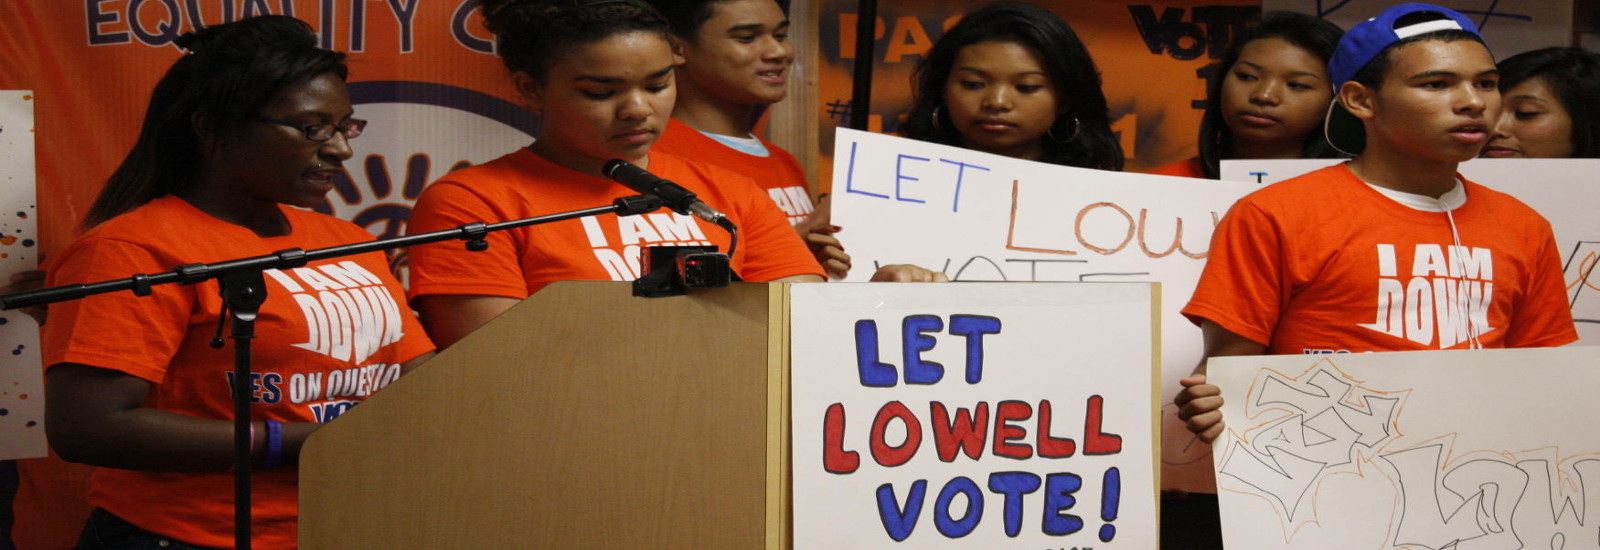 Members of the United Teen Equality Center give a press conference on their campaign to lower the voting age.